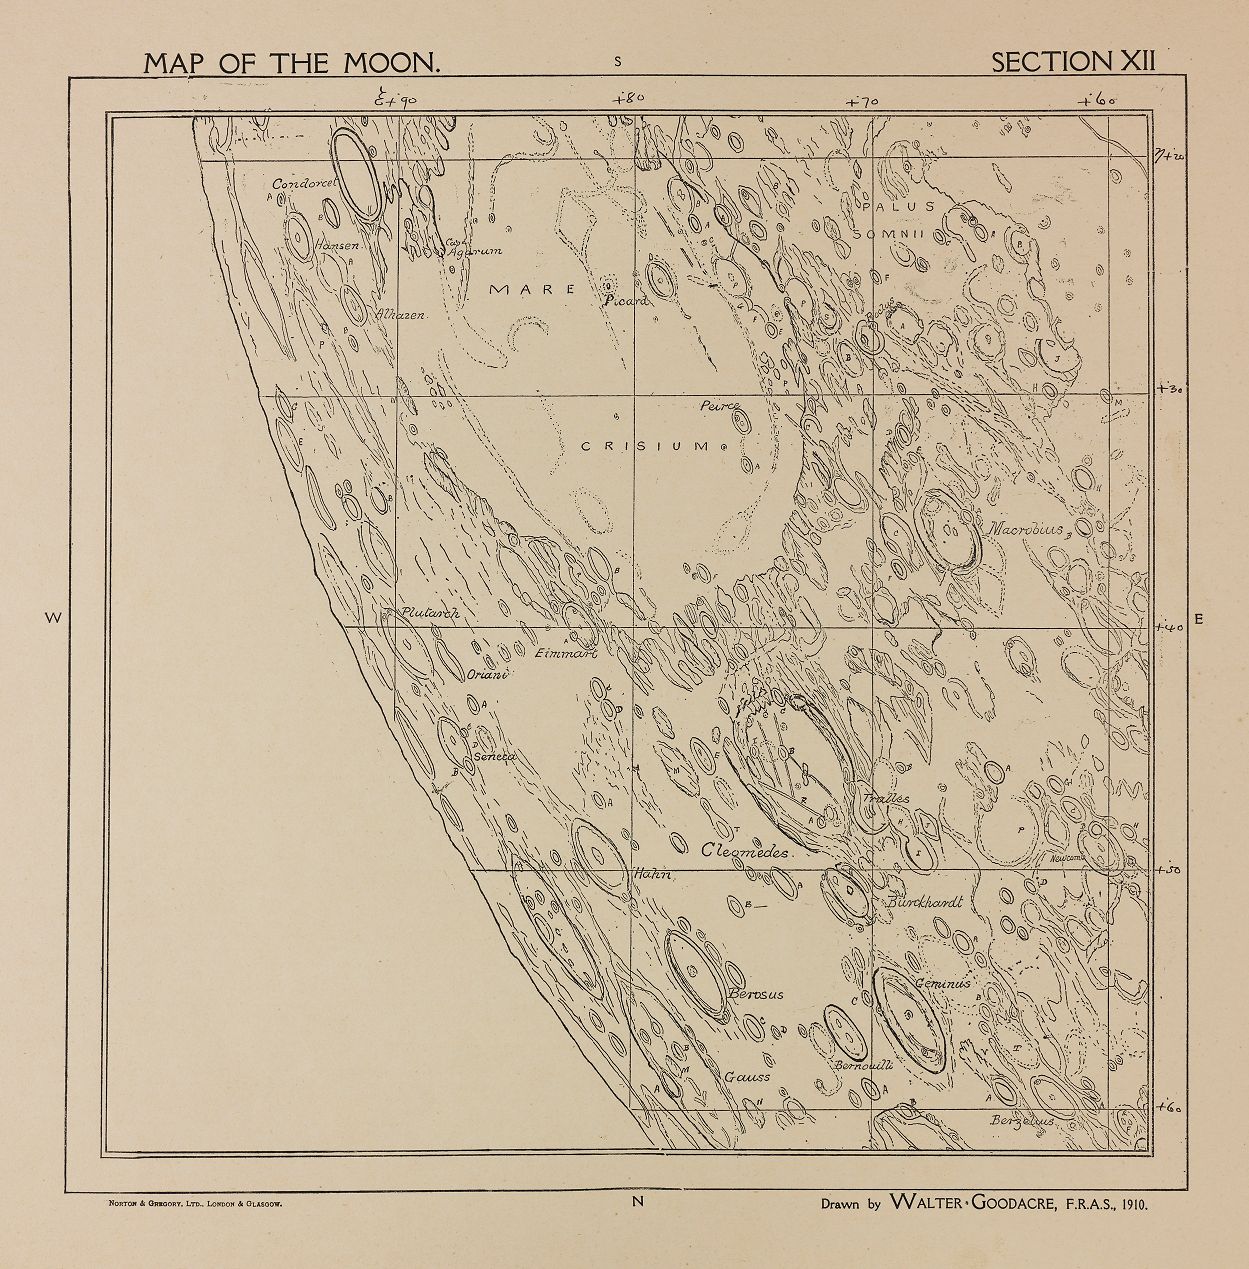 Walter Goodacre Moon Map 1910.png